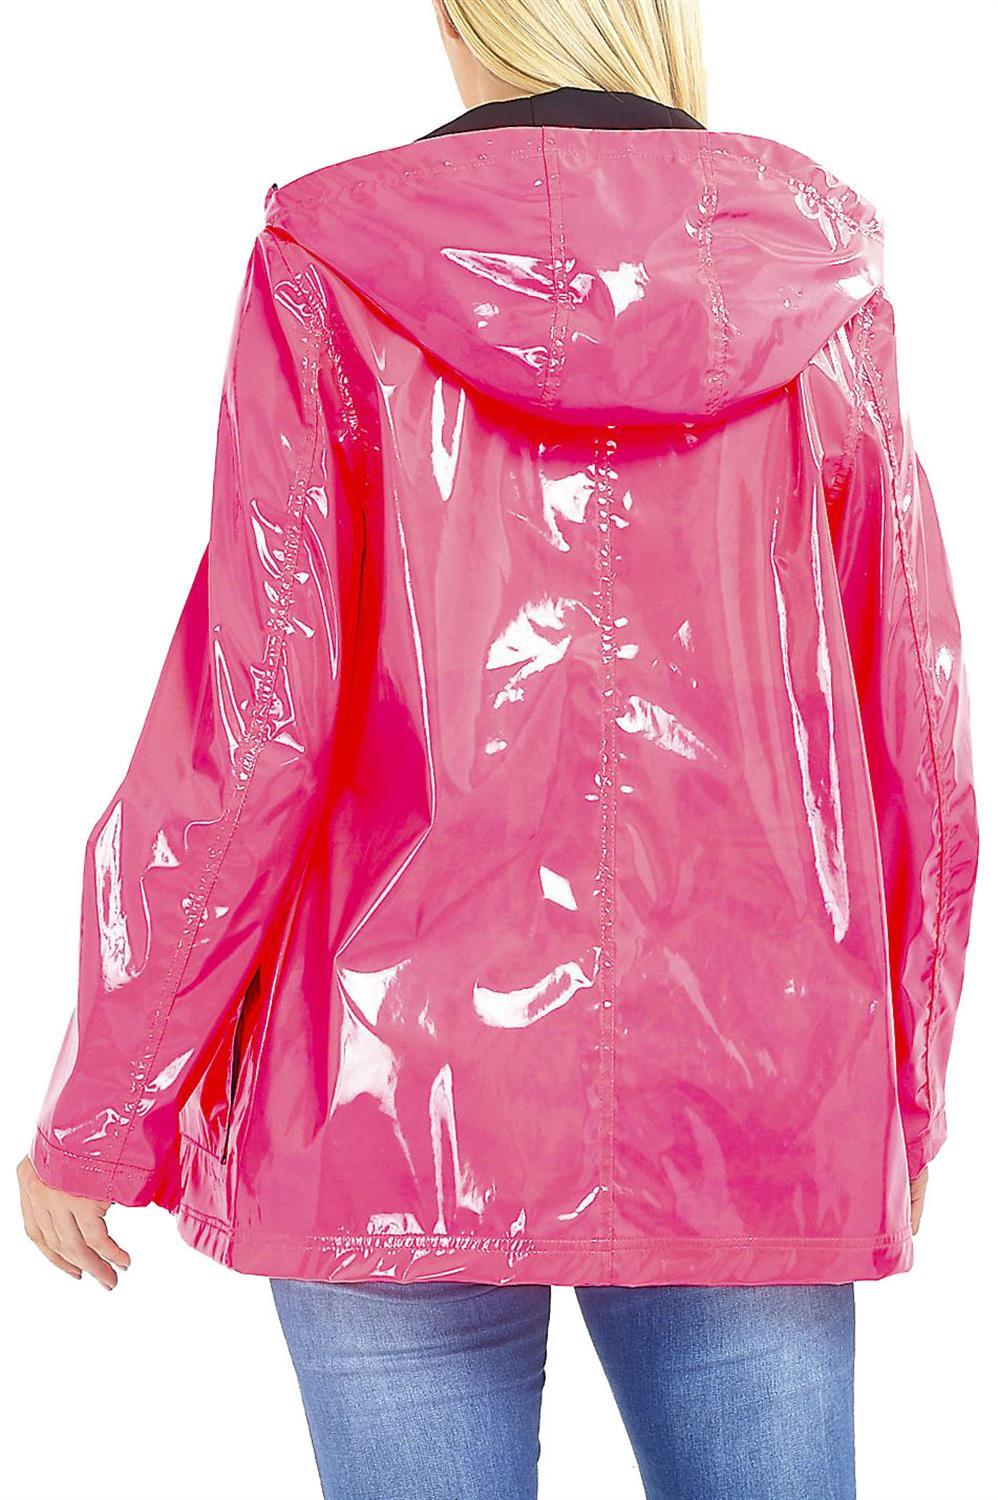 good out x to buy exclusive deals Details about New Womens Brave Soul Neon Pink High Shine Hooded Mac  Raincoat Jacket